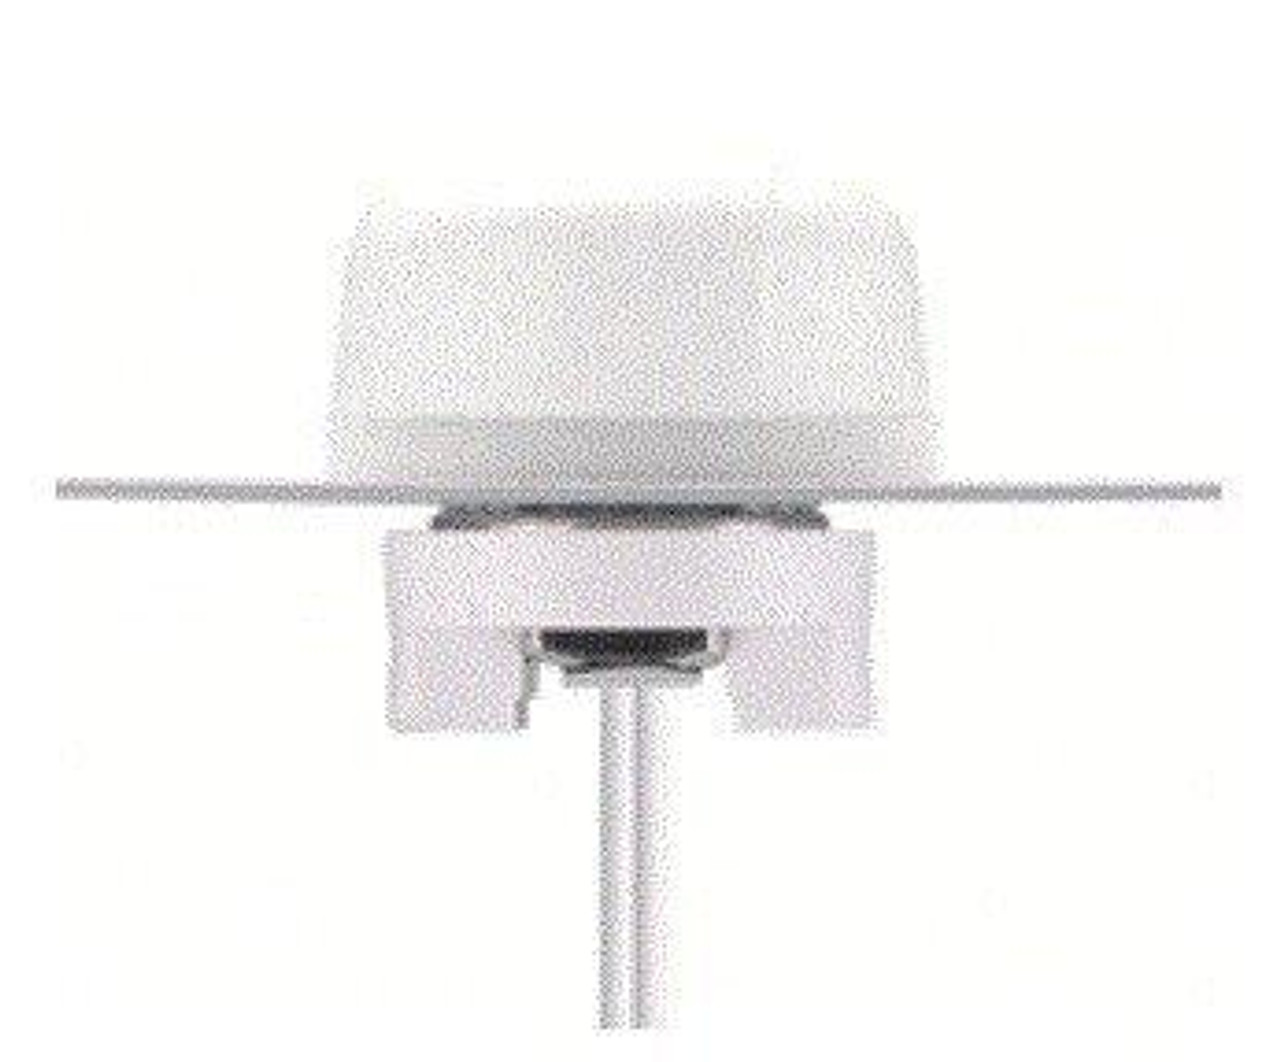 Taoglas Hercules MA104 | White Permanent Mount Antenna | Cloud Monitored Objects Inc